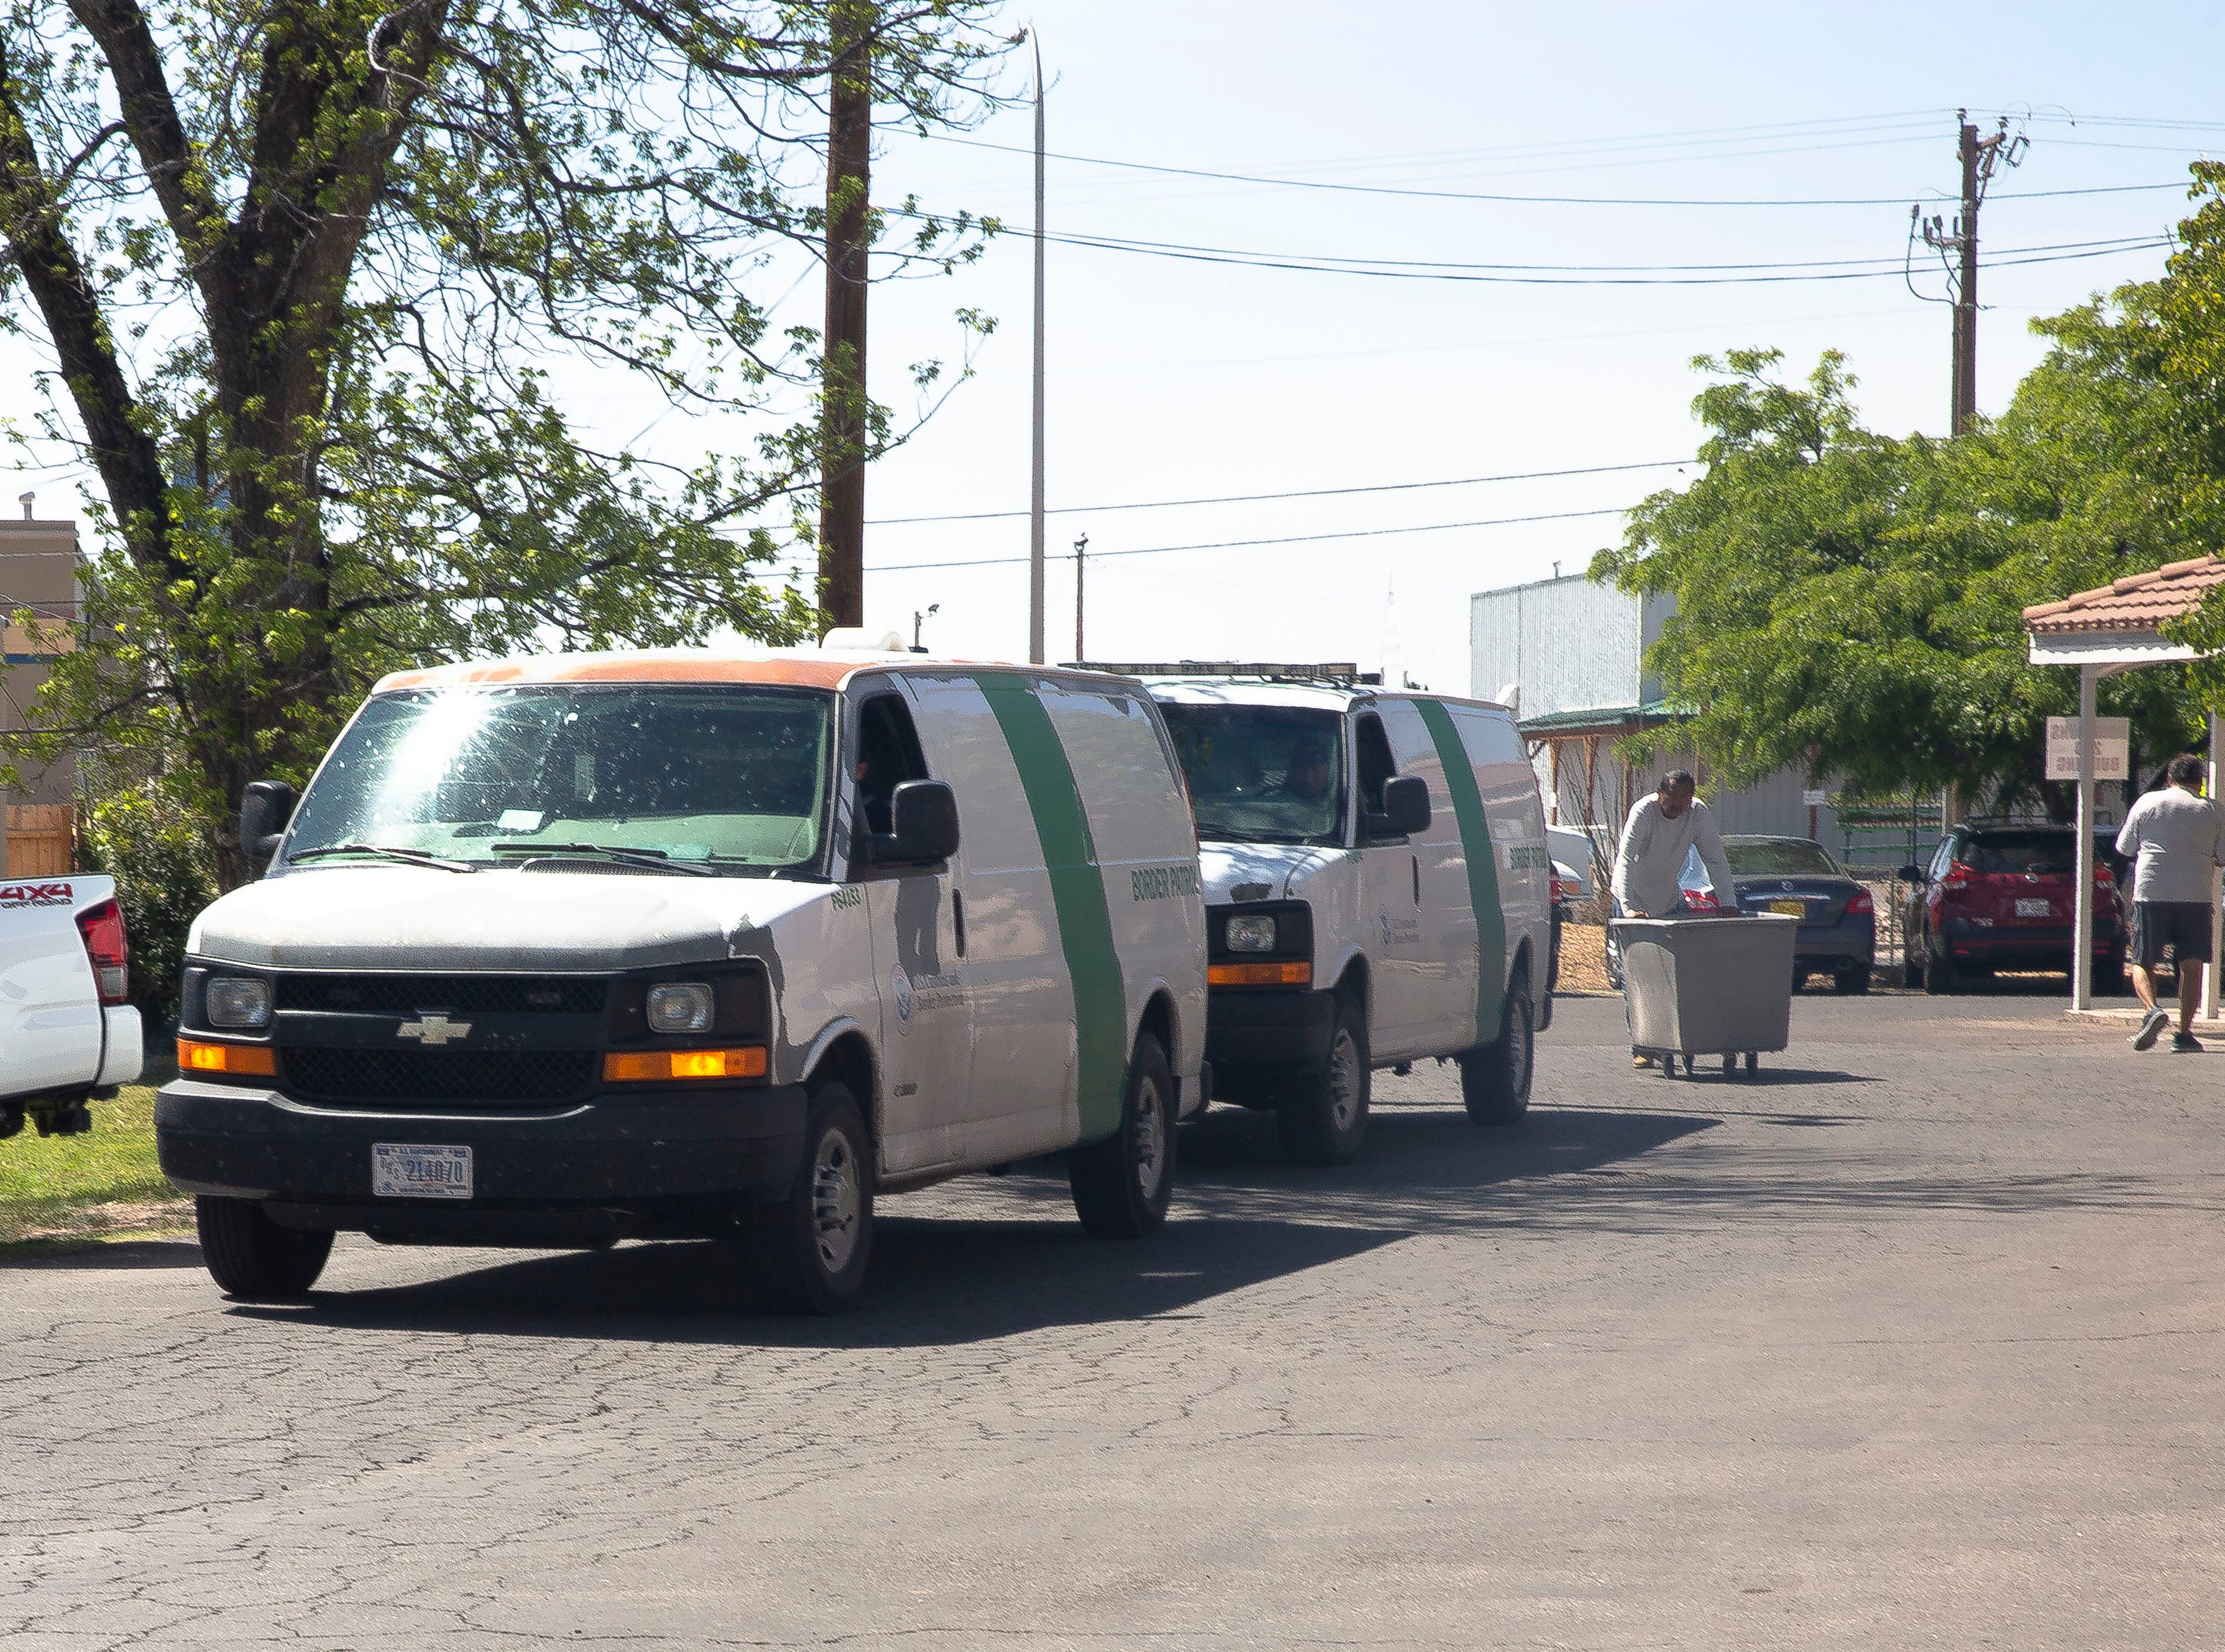 Border Patrol vans arrive Monday, April 15, 2019, at the Gospel Rescue Mission in Las Cruces. The mission received about 170 migrants on Monday.